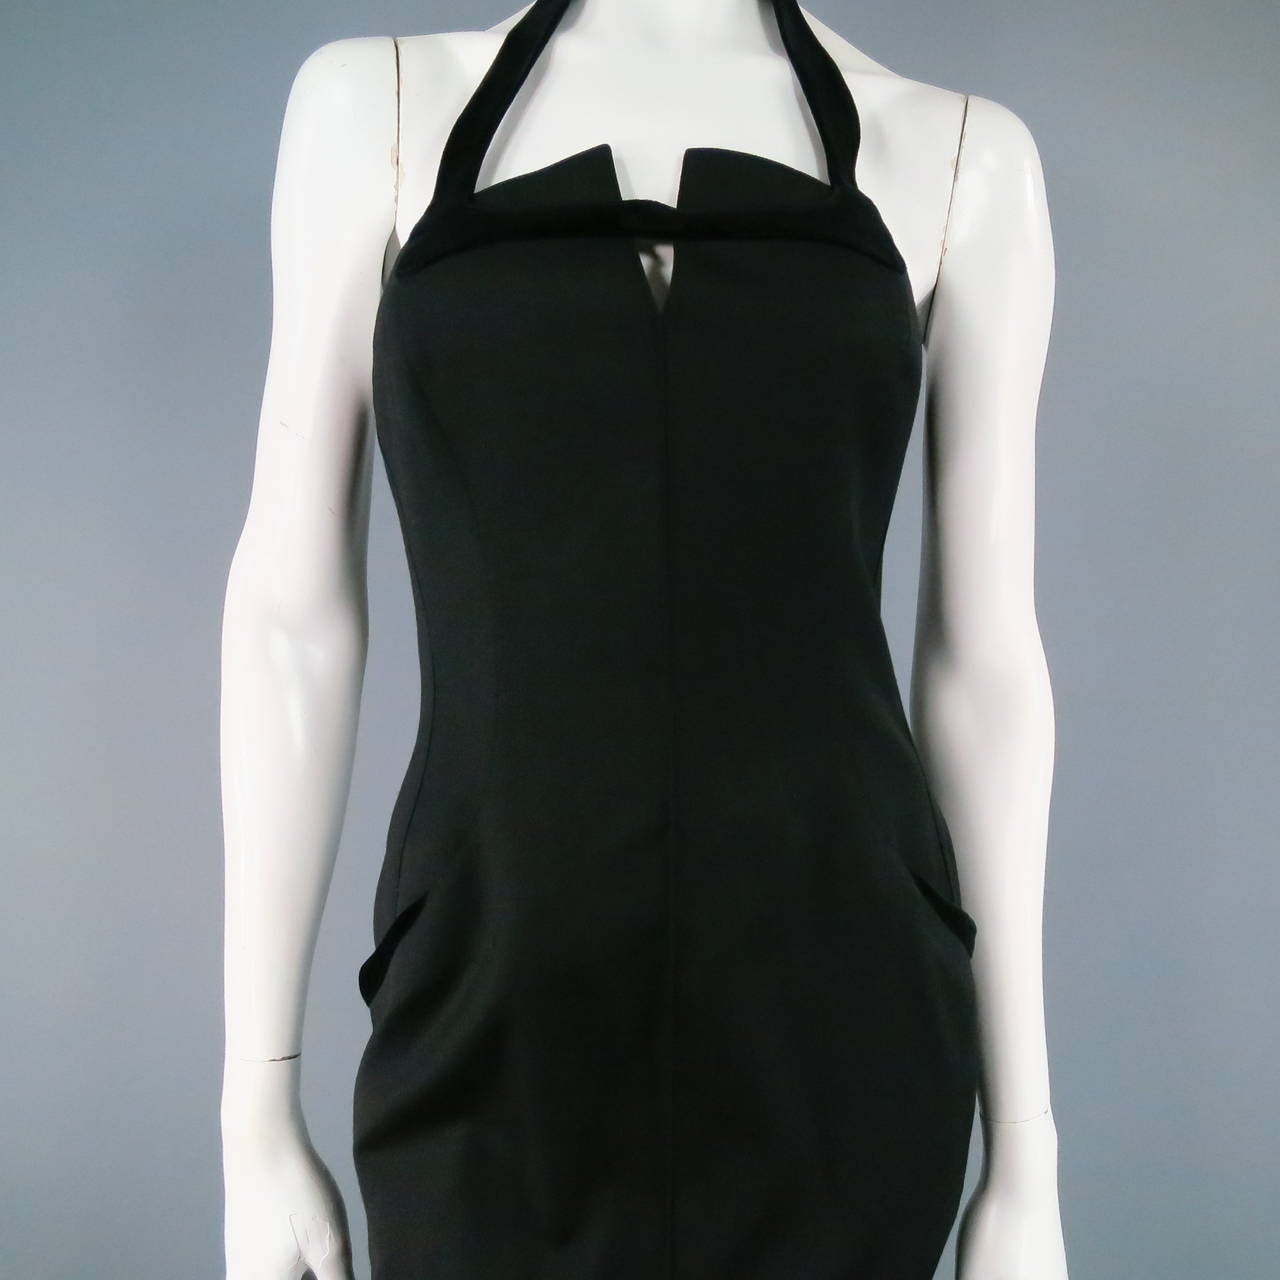 THIERRY MUGLER Size 6 Black Cotton/Wool Cocktail Dress 2